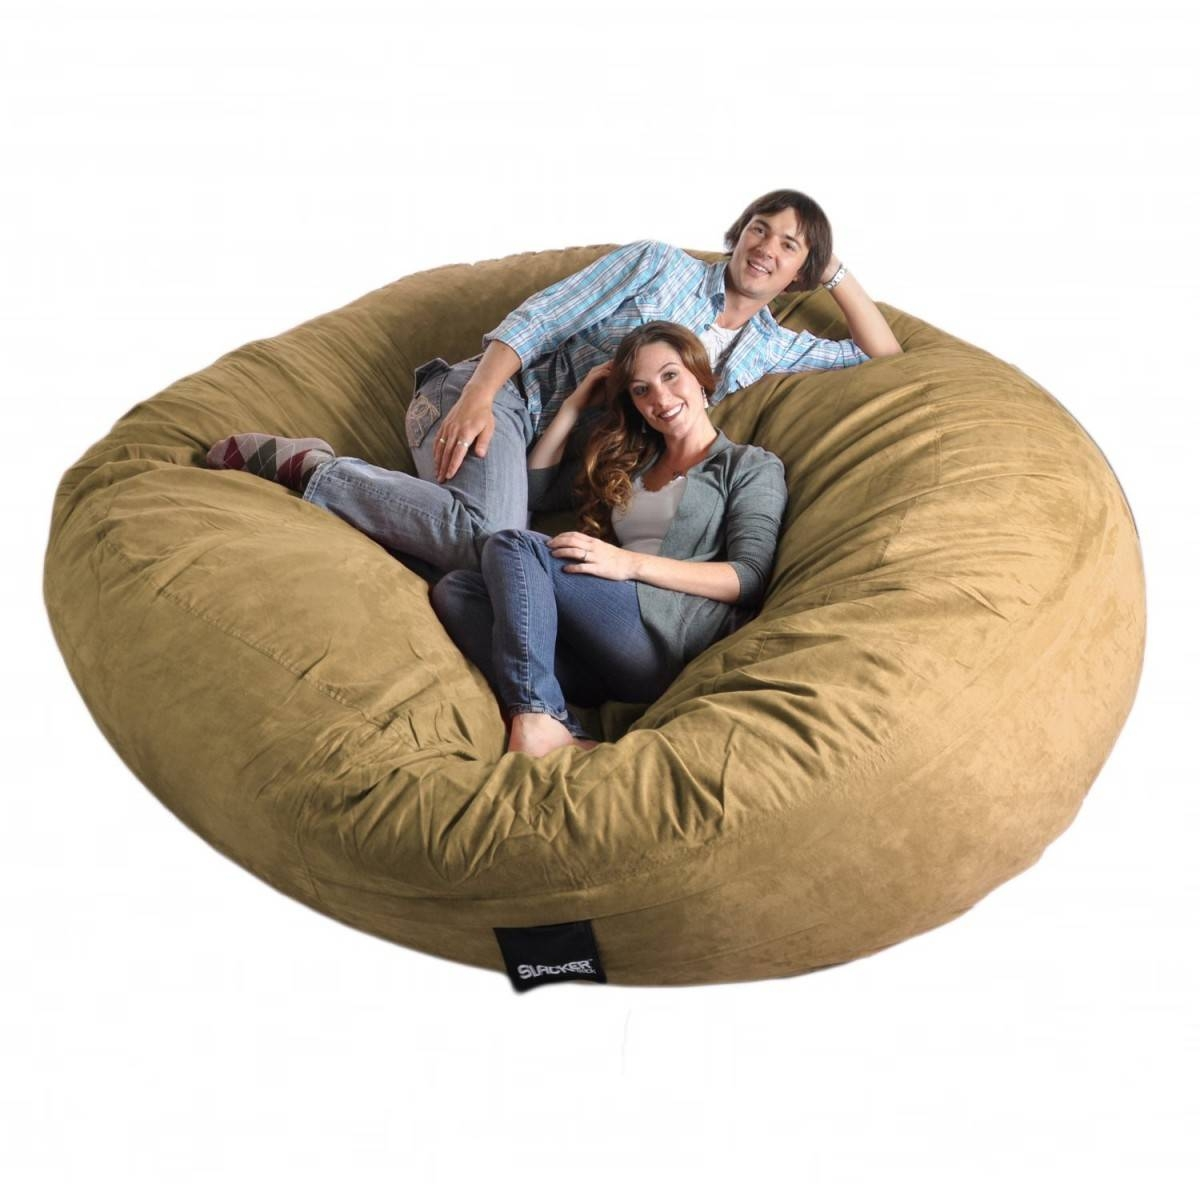 15 Best Giant Bean Bag Chairs